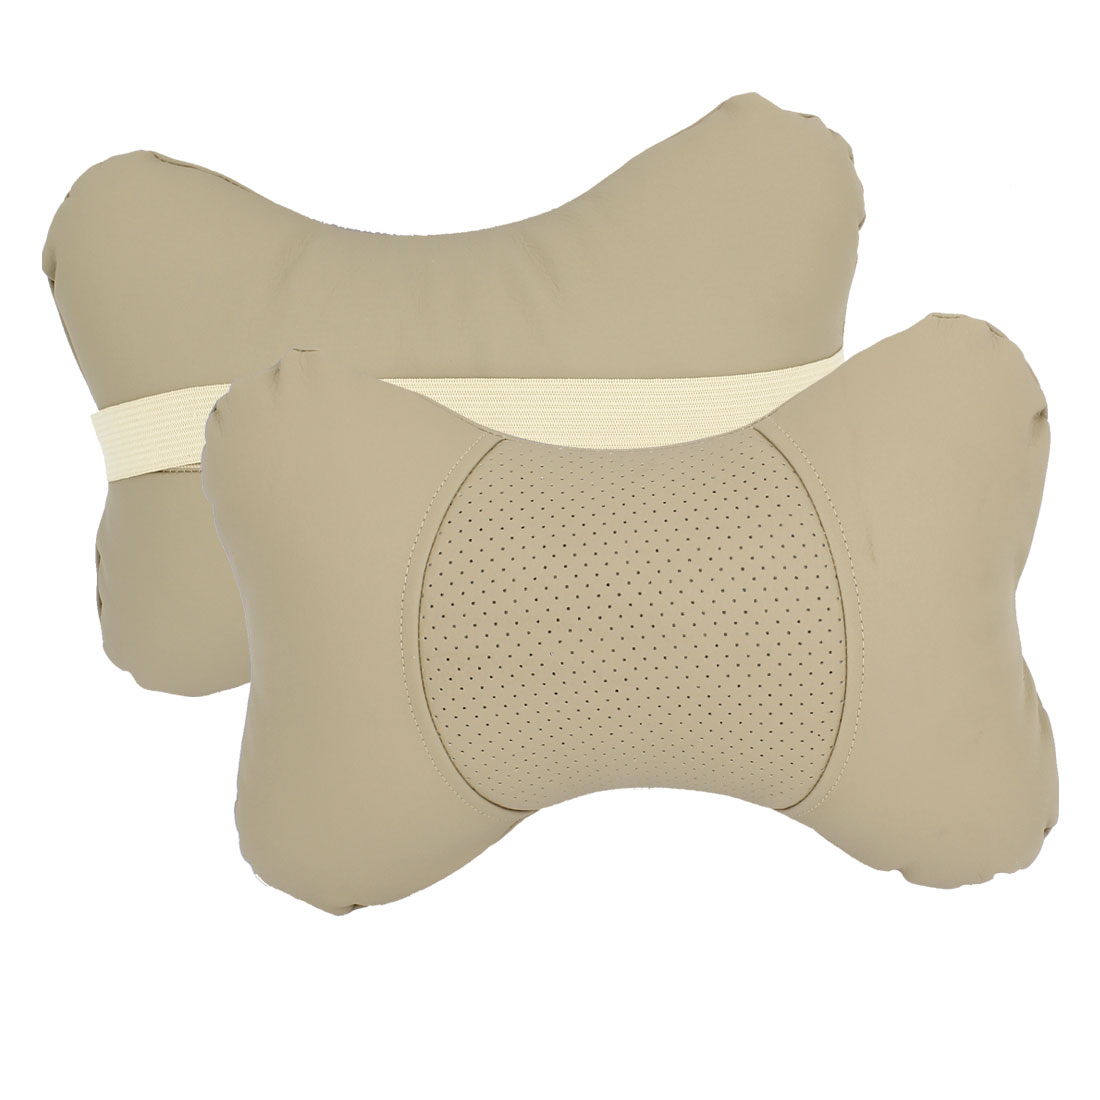 2 Pcs Beige Faux Leather Stretchy Band Head Neck Rest Pilows for Car